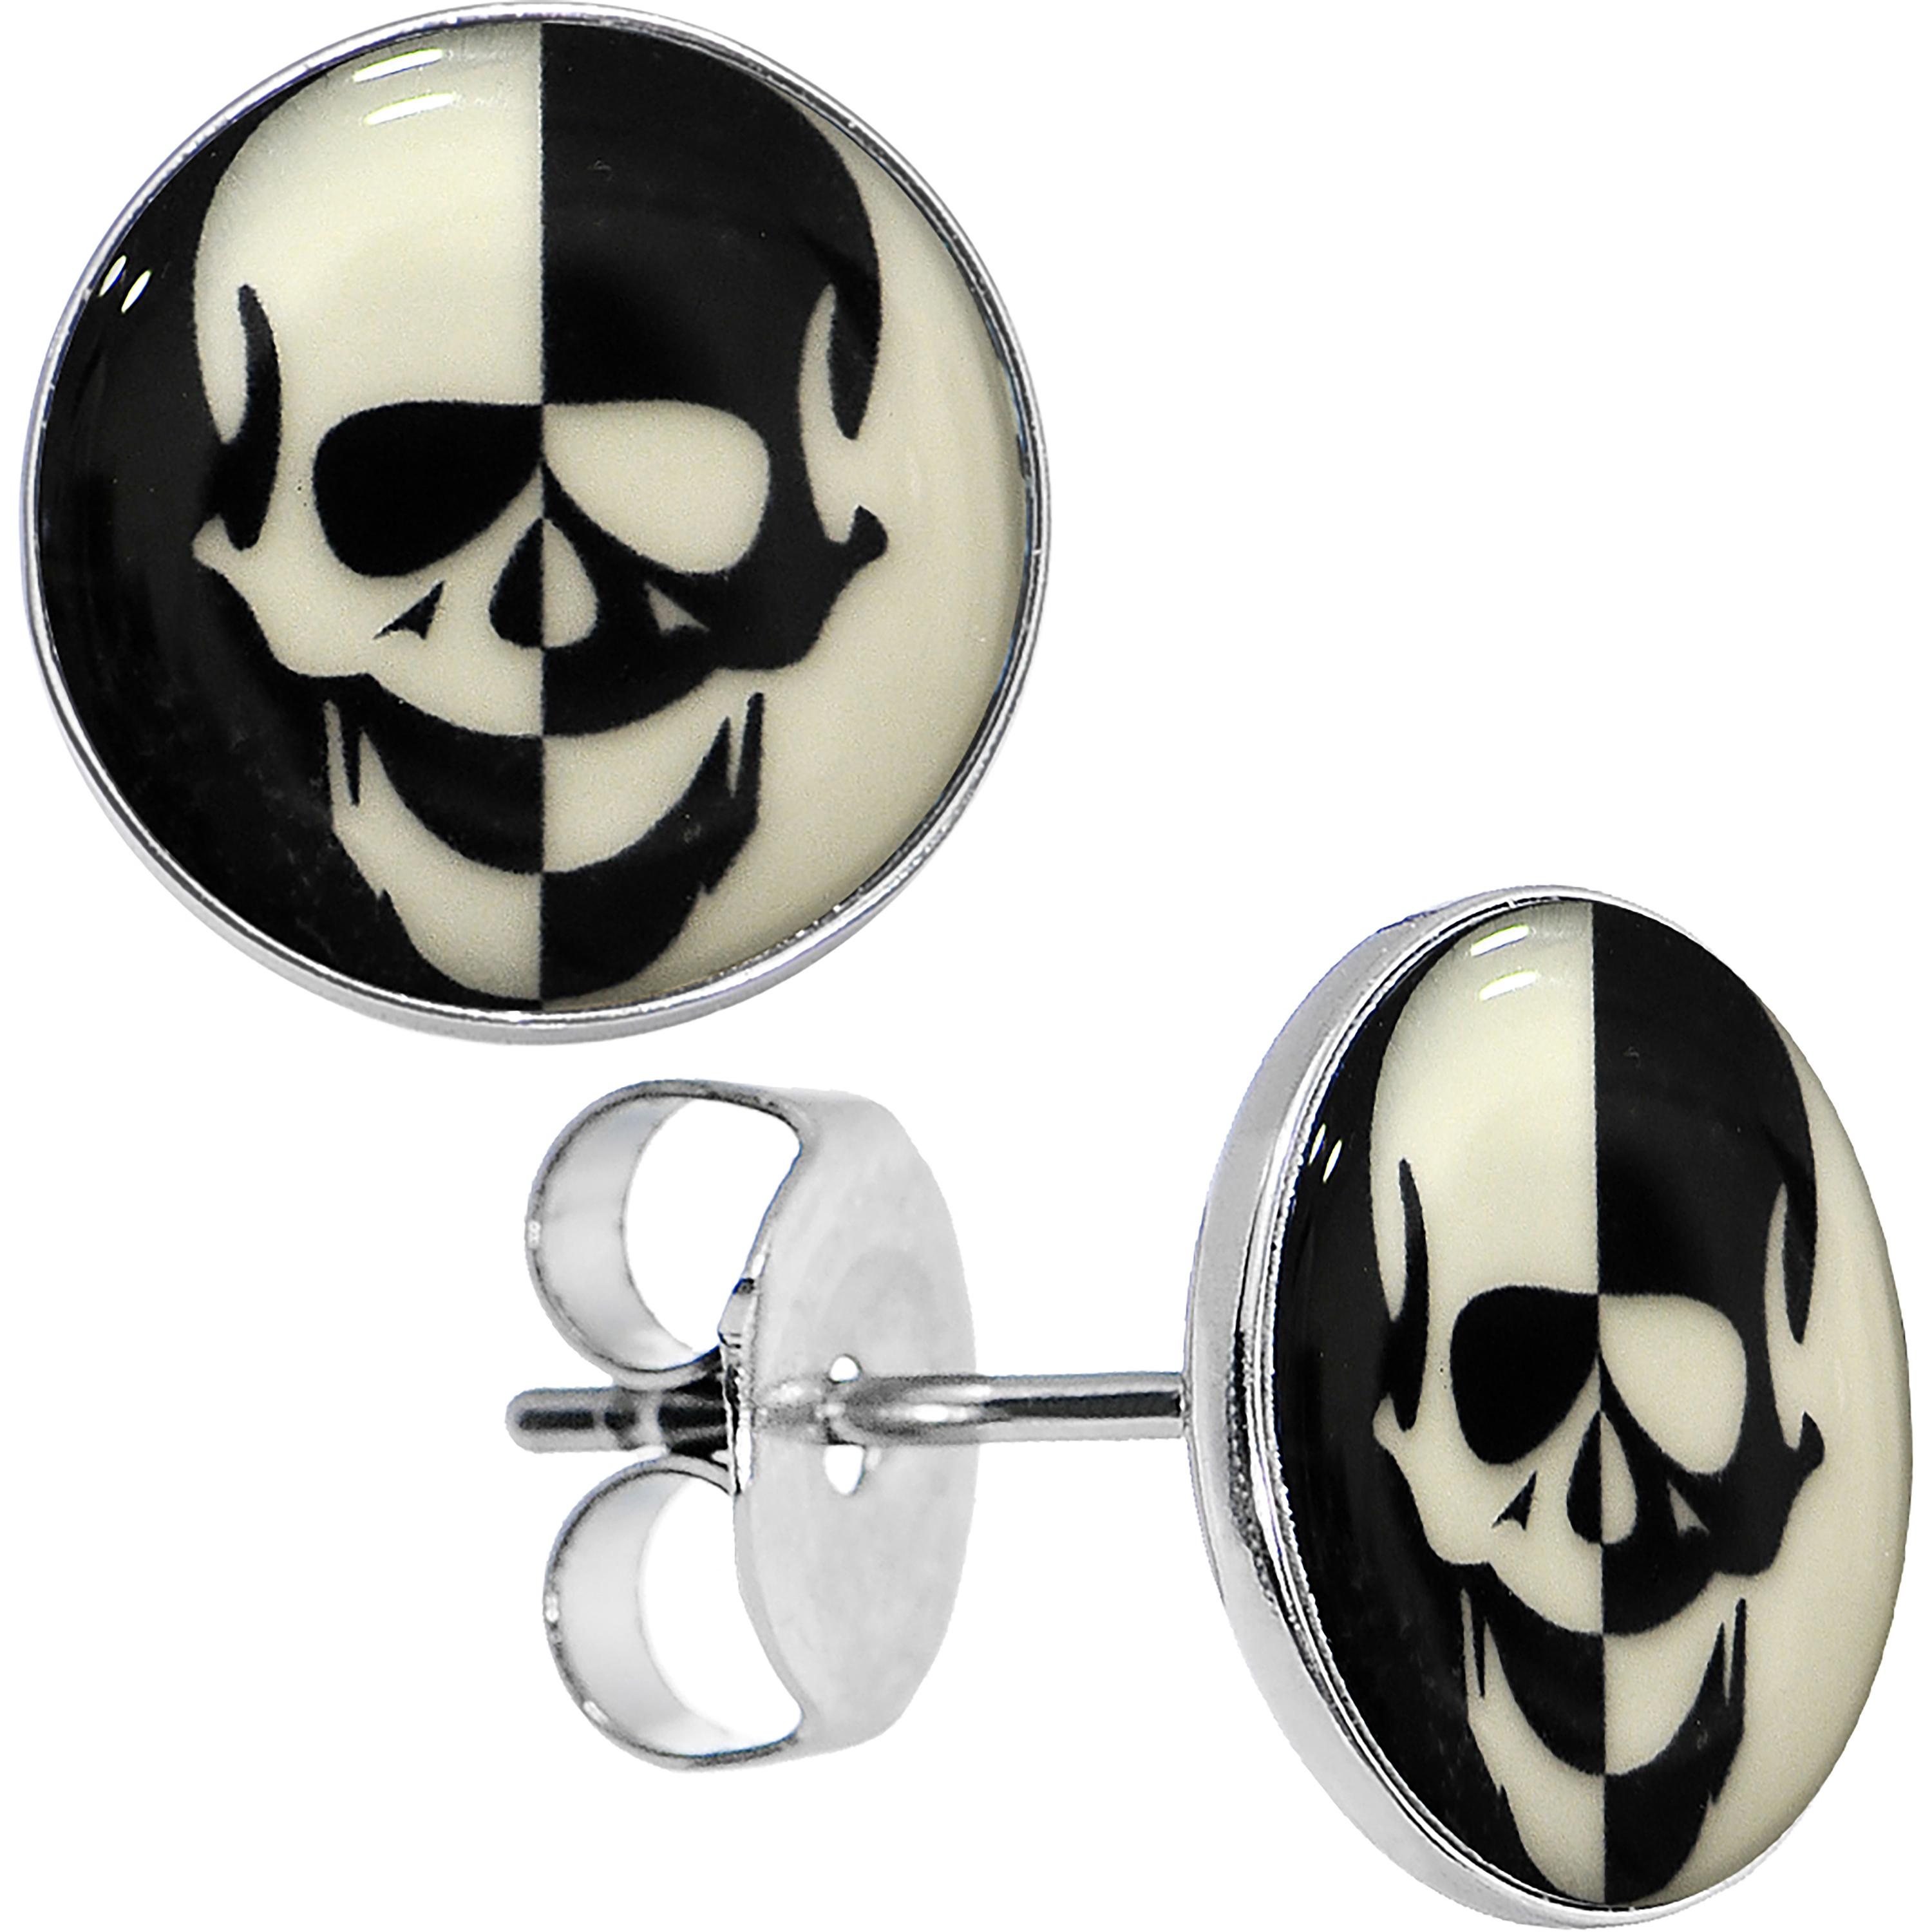 Body Candy Stainless Steel Glow in the Dark Inverted Skull Stud Earrings